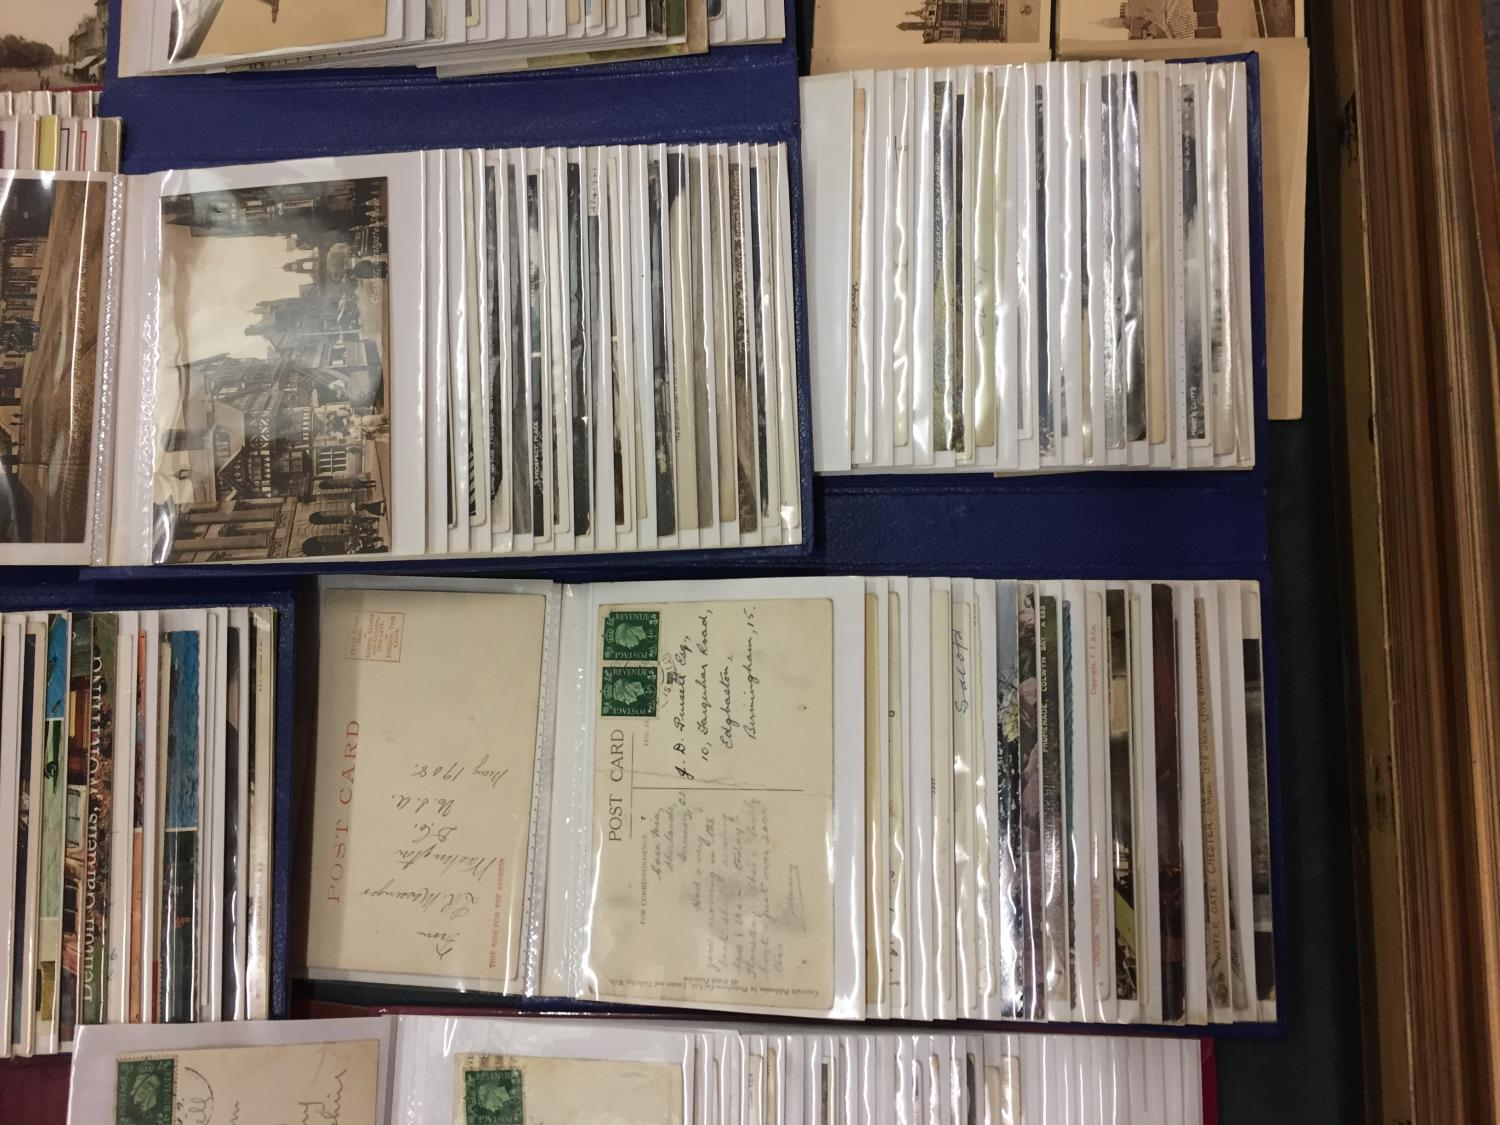 A LARGE COLLECTION OF 550+ ANTIQUE AND VINTAGE POSTCARDS RANGING FROM 1908-1970'S. MAINLEY UK - SOME - Image 7 of 14